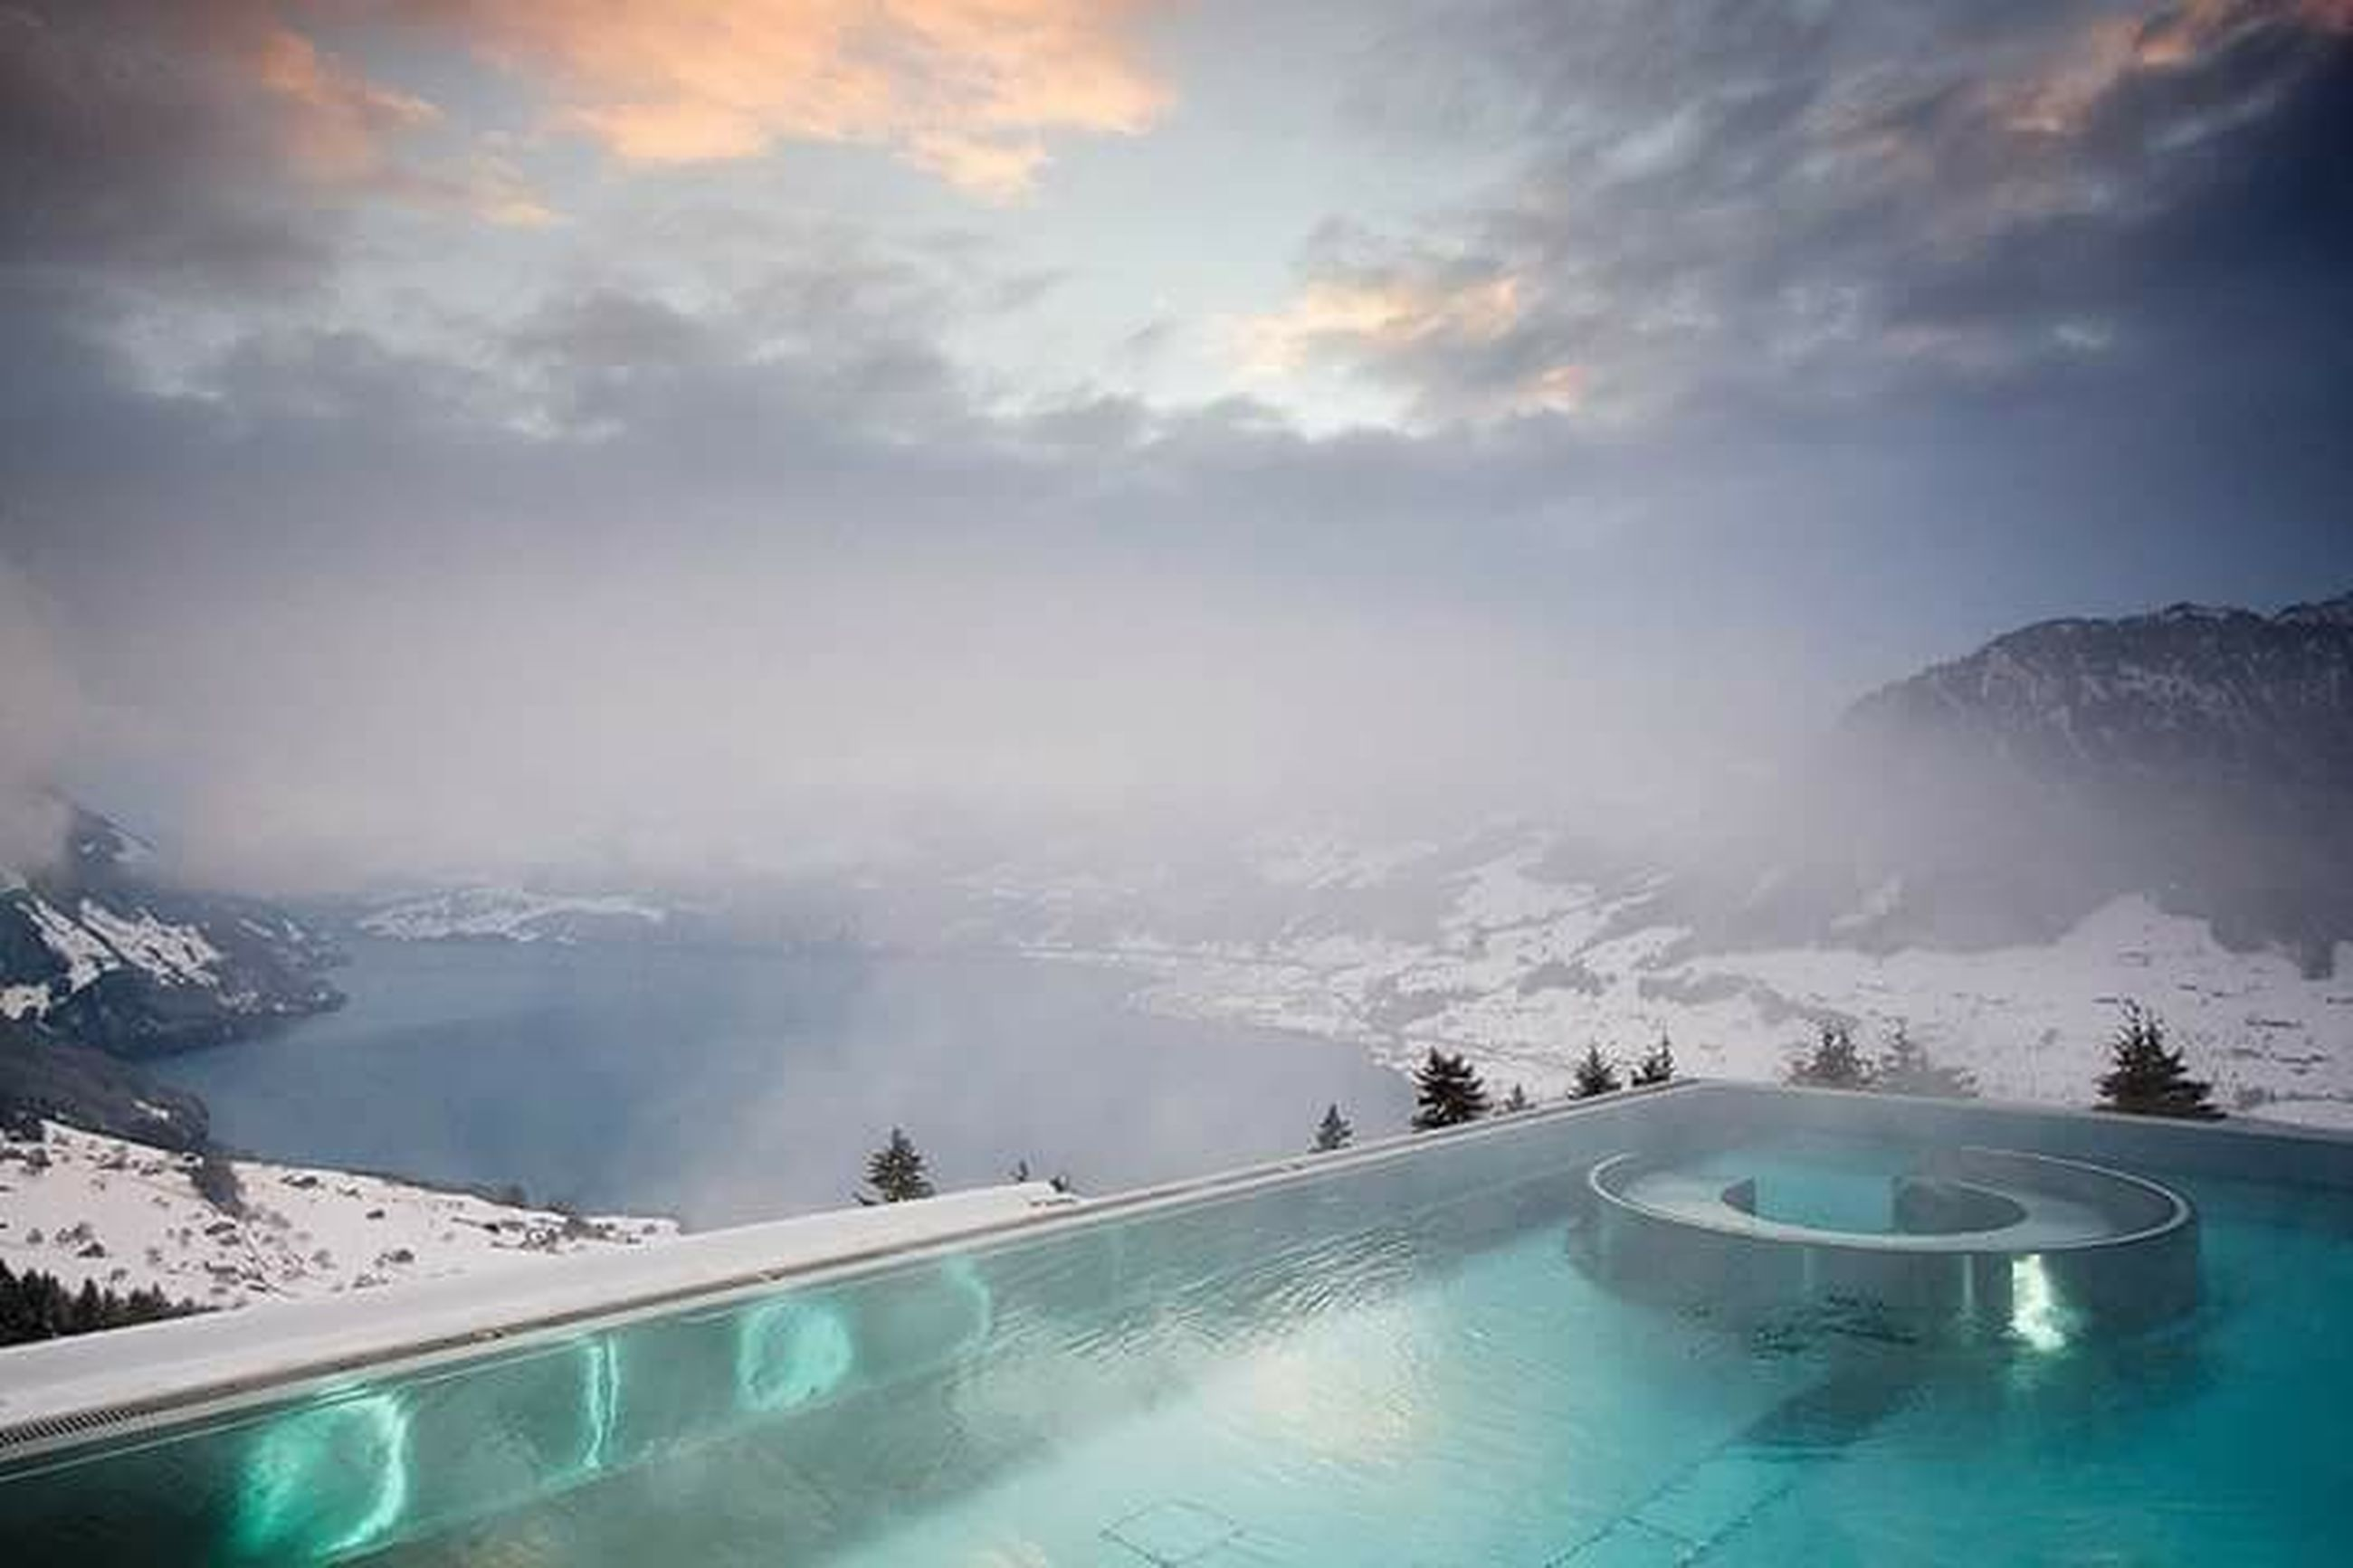 snow, winter, cold temperature, mountain, weather, season, scenics, beauty in nature, sky, mountain range, tranquil scene, transportation, nature, tranquility, cloud - sky, covering, snowcapped mountain, water, mode of transport, frozen